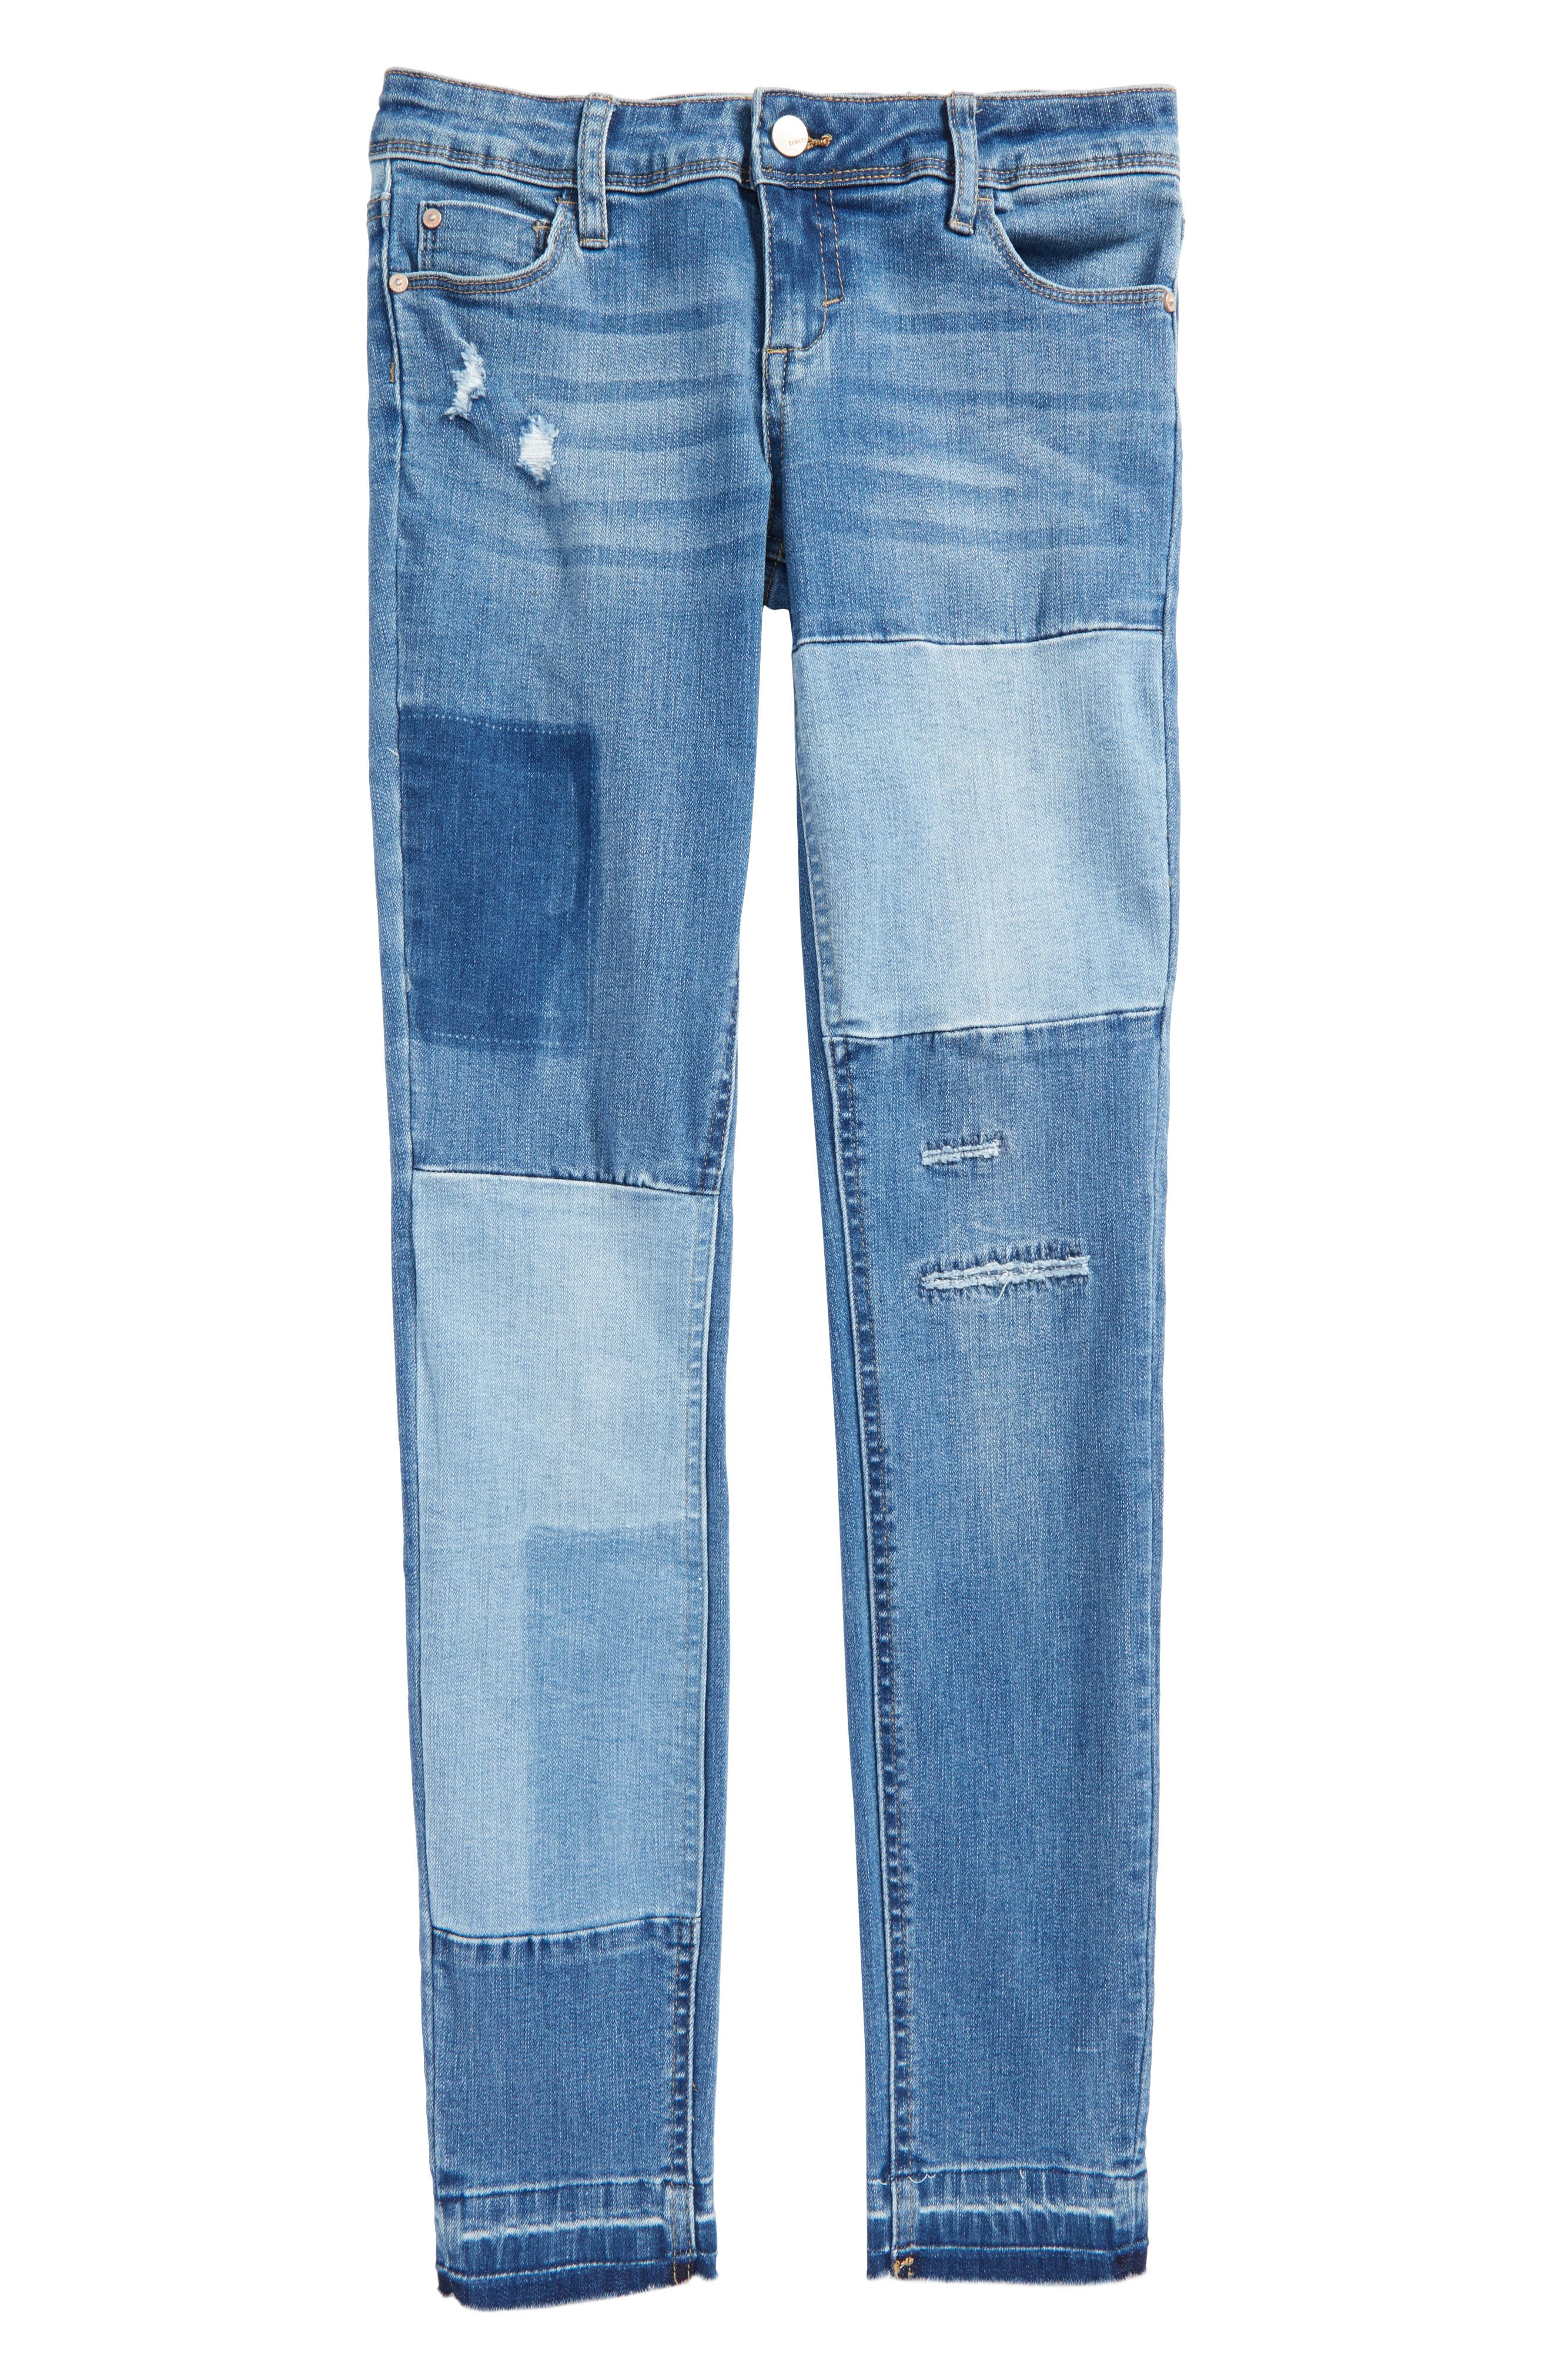 Alternate Image 1 Selected - Tractr Patchwork Skinny Jeans (Big Girls)